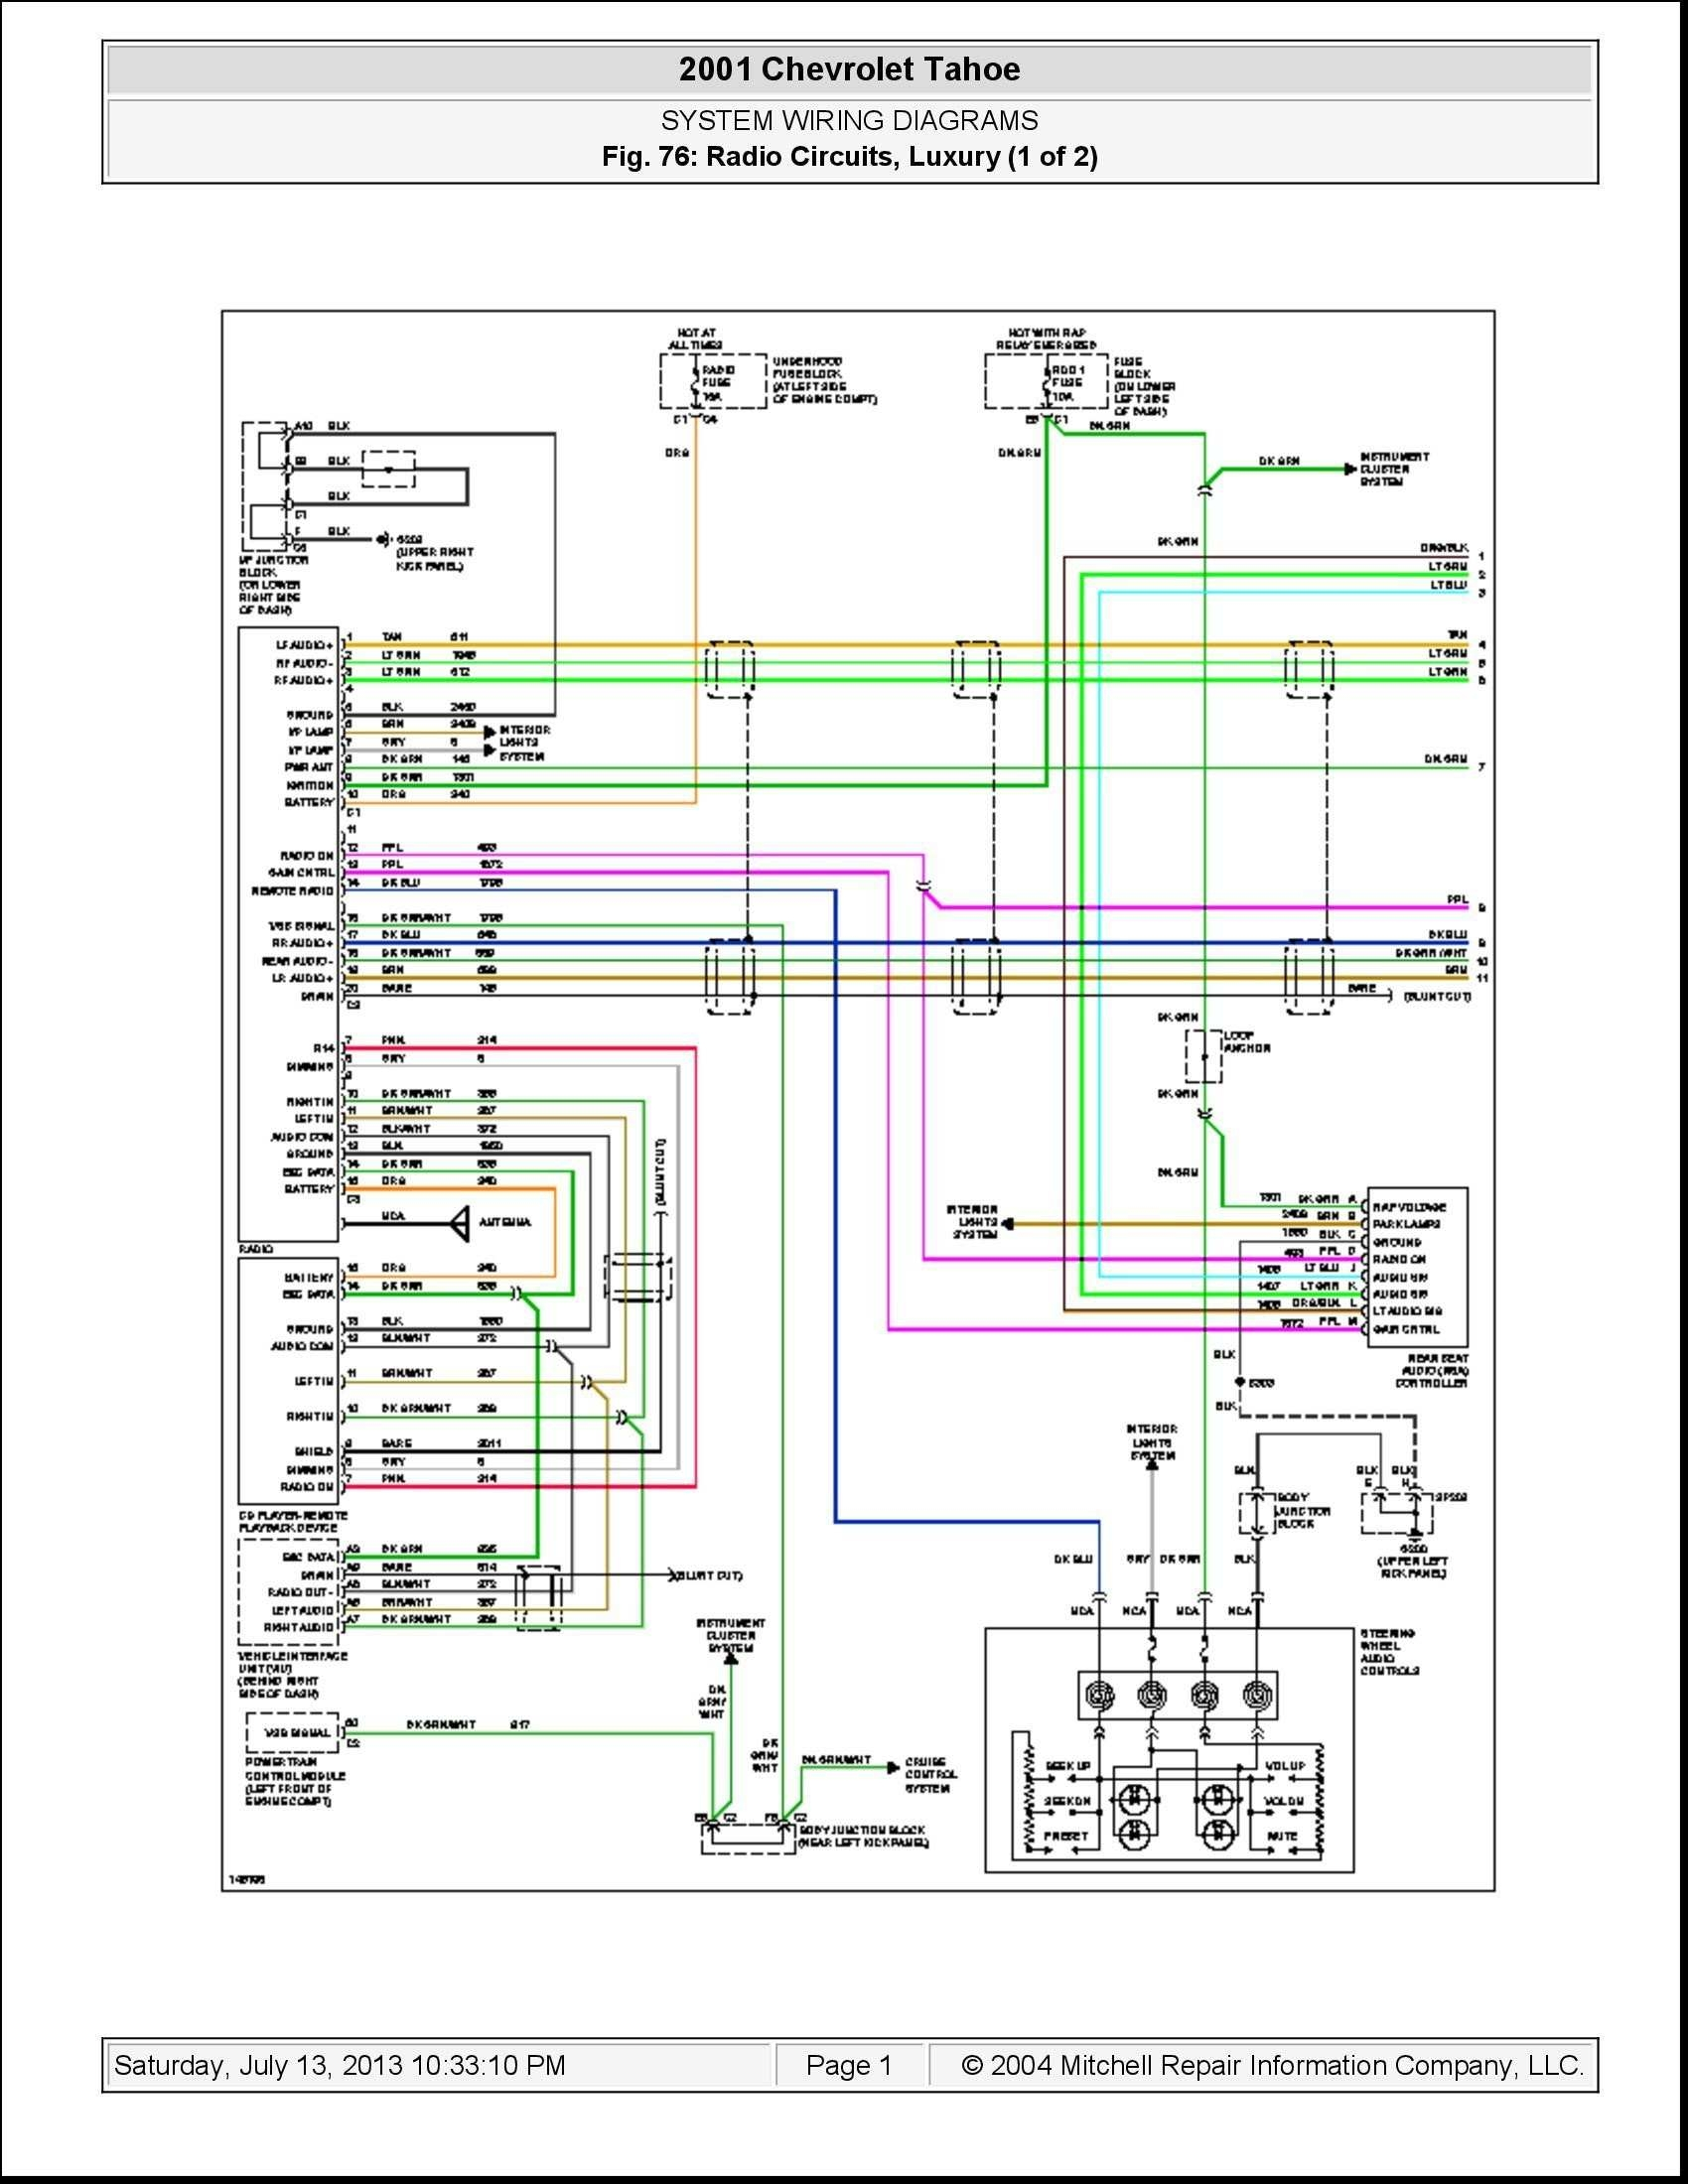 2005 Chevy Silverado Radio Wiring Harness Diagram | Free ... on